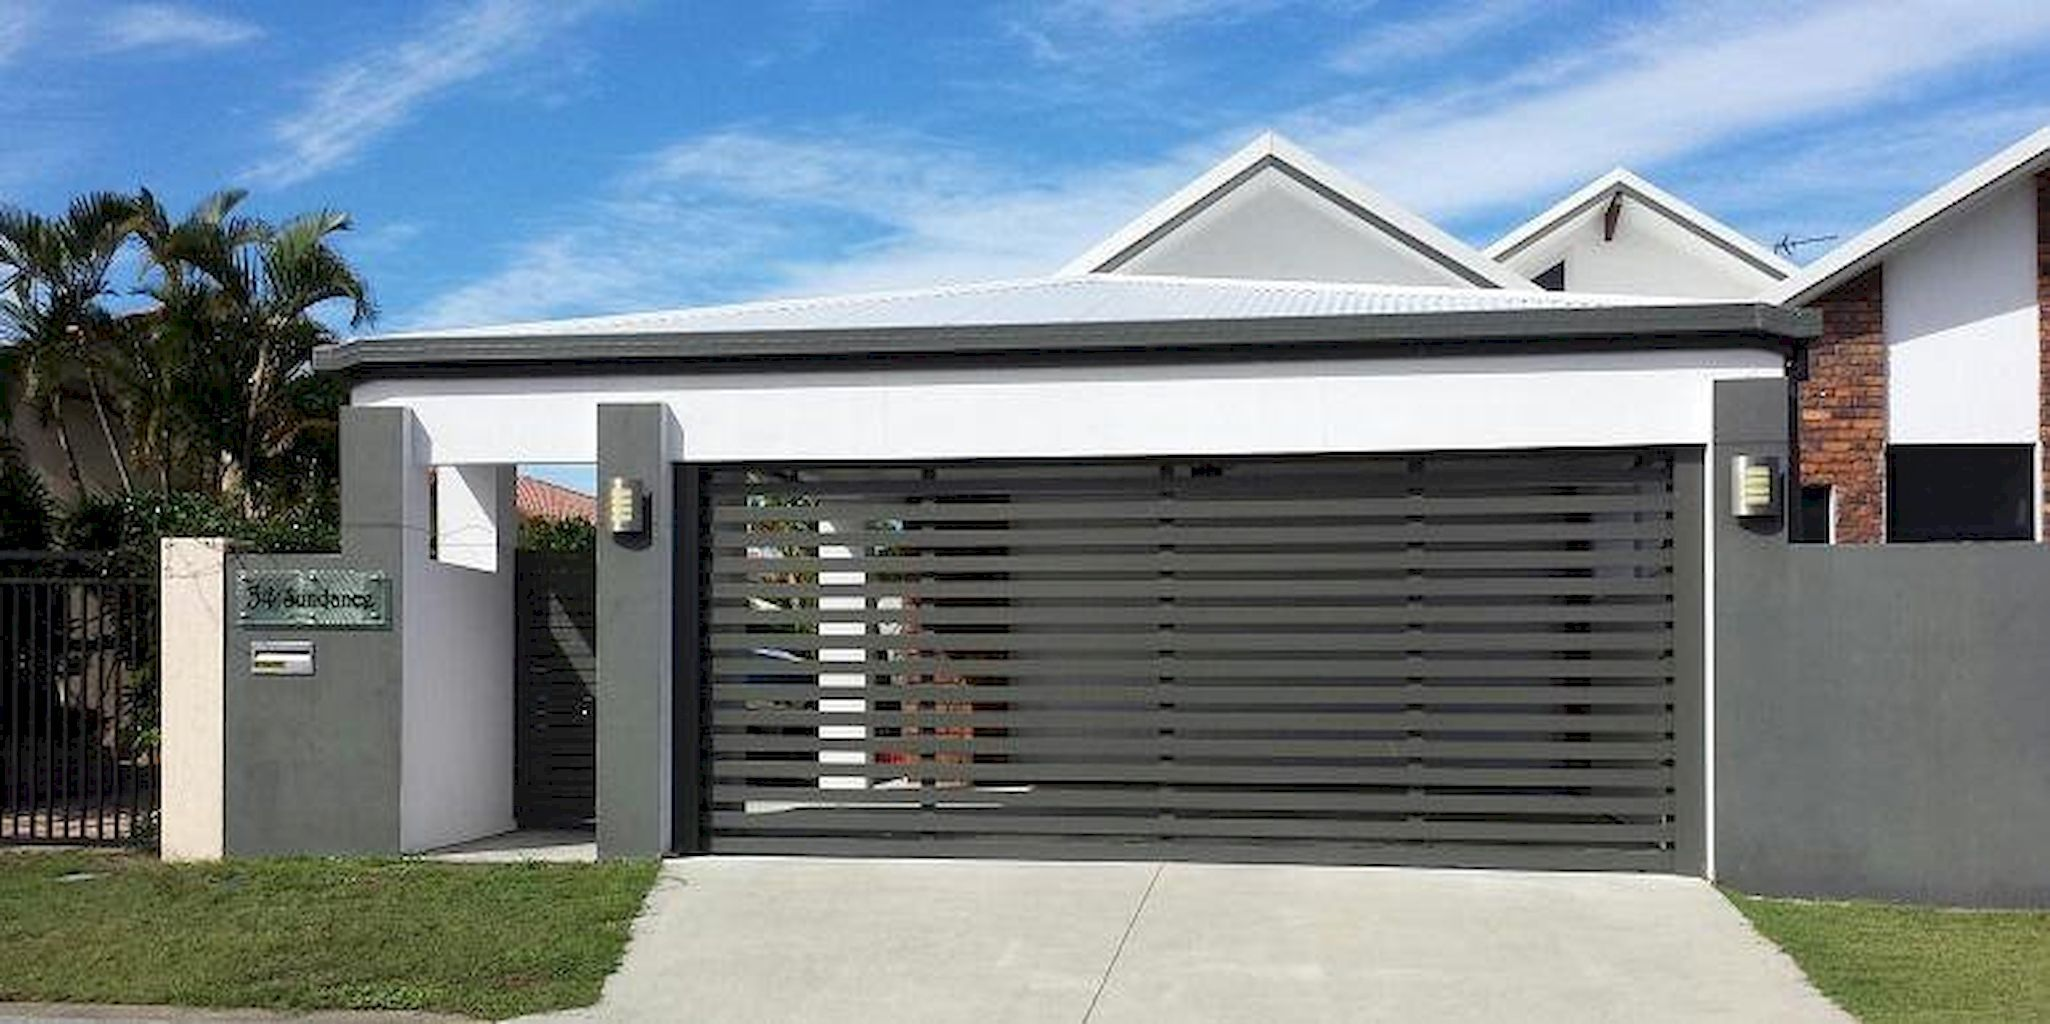 55 adorable modern carports garage designs ideas modern for Carport construction costs